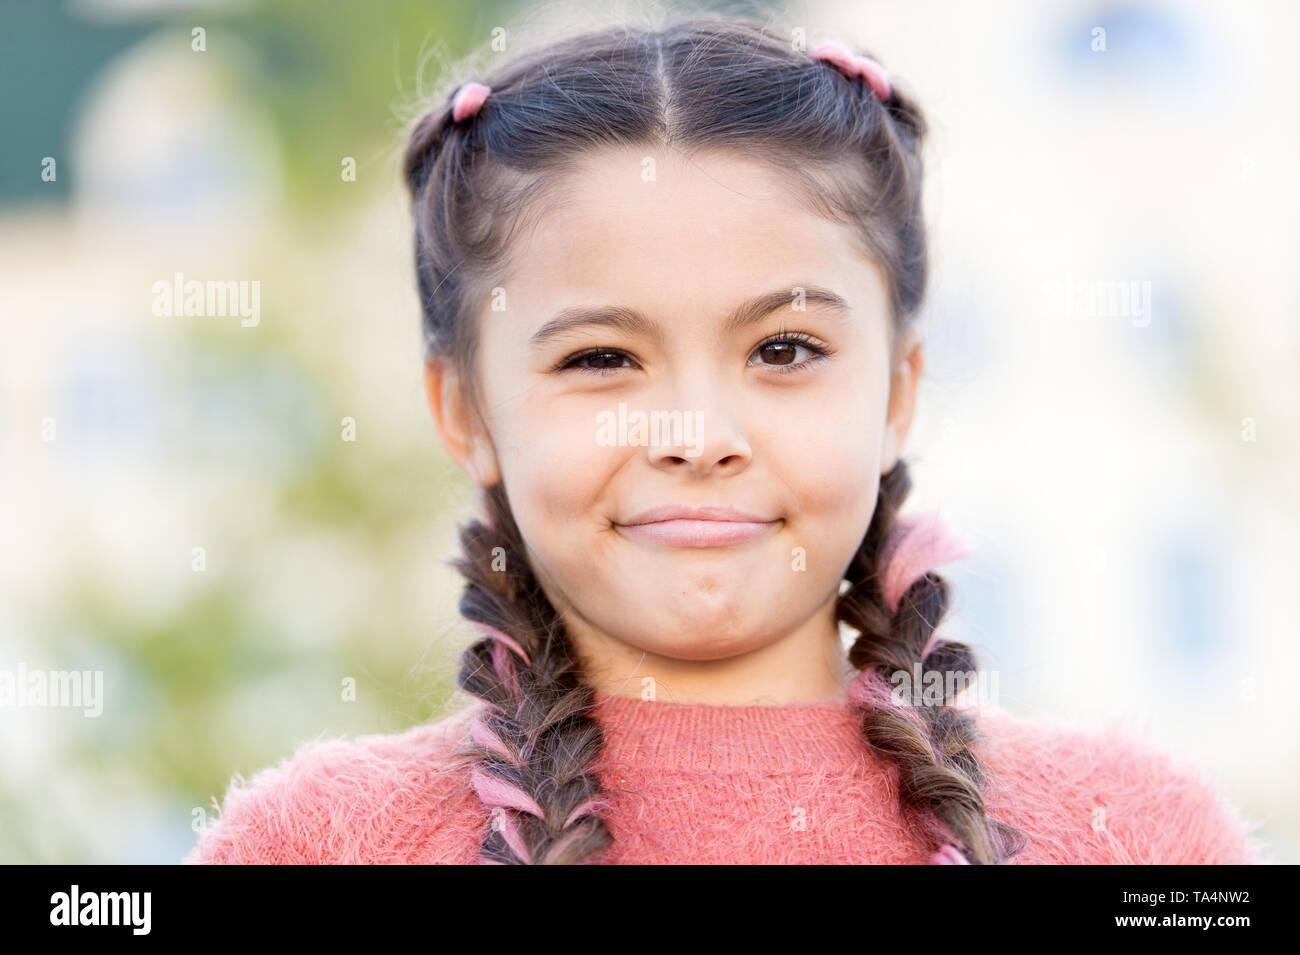 Have some doubts. Sincere emotional kid. Girl emotional face. Thoughts and doubts concept. Kid doubtful beautiful face. Emotions concept. Thoughtful girl hesitating making decision. Having fun. - Stock Image